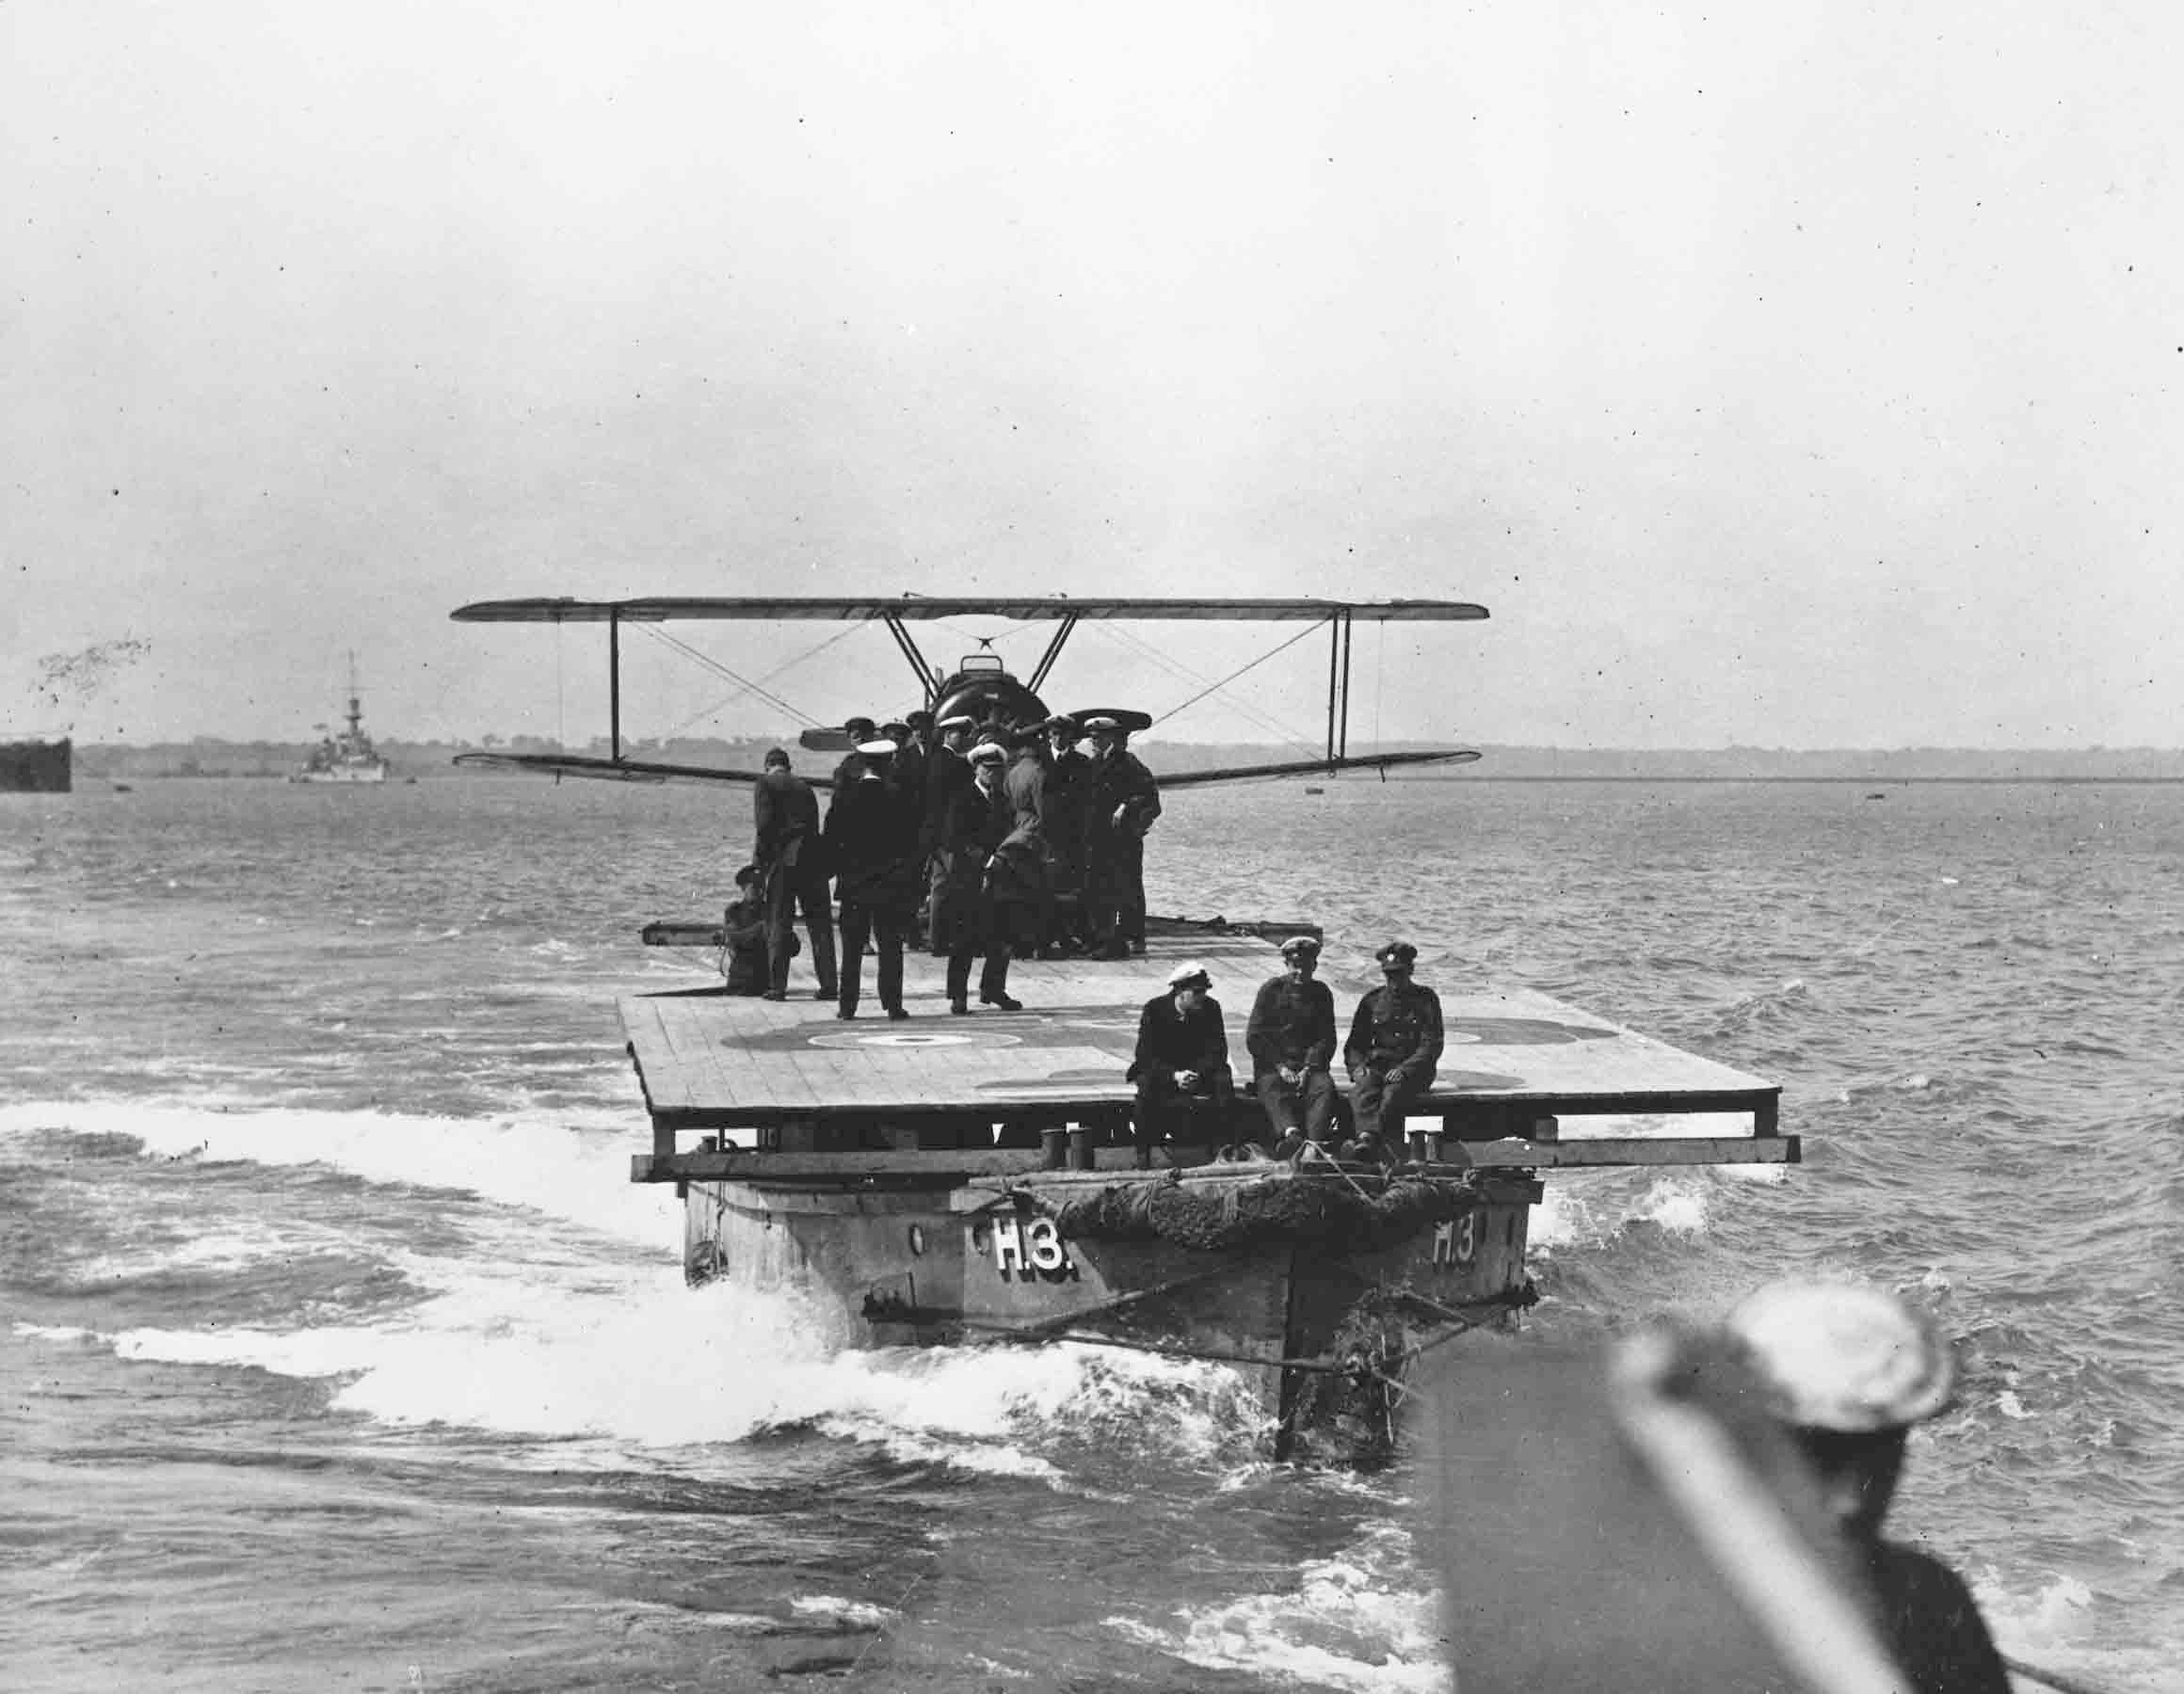 Sopwith 2F1 Camel on board lighter H3 being towed behind a destroyer, Felixstowe, 23 August 1918 (RAFM reference: P015443)